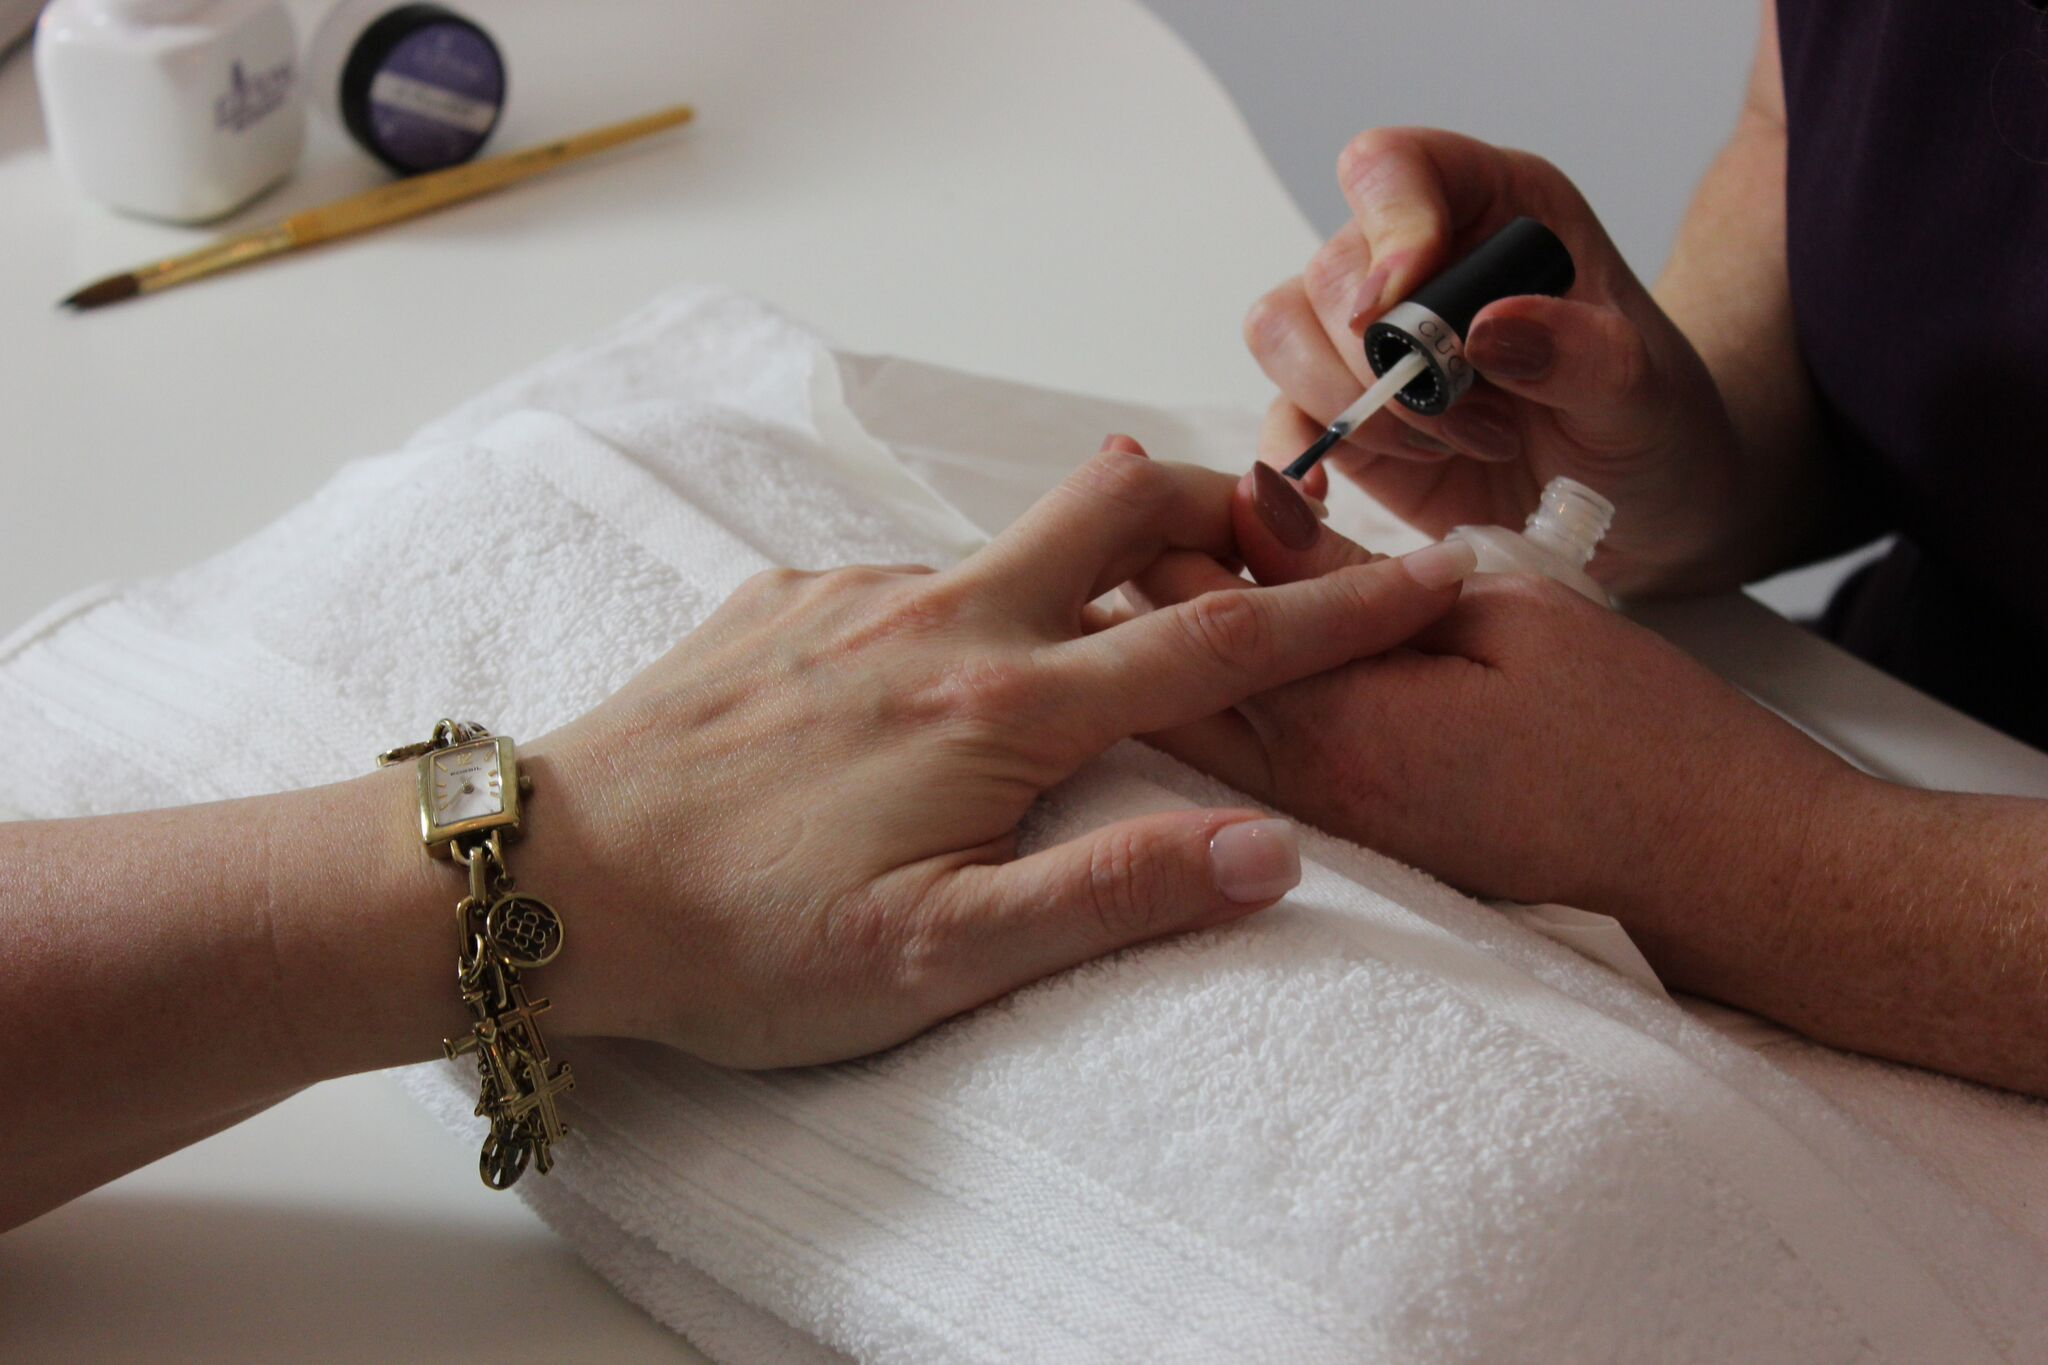 Close up image of the hand of a woman who is receiving a manicure